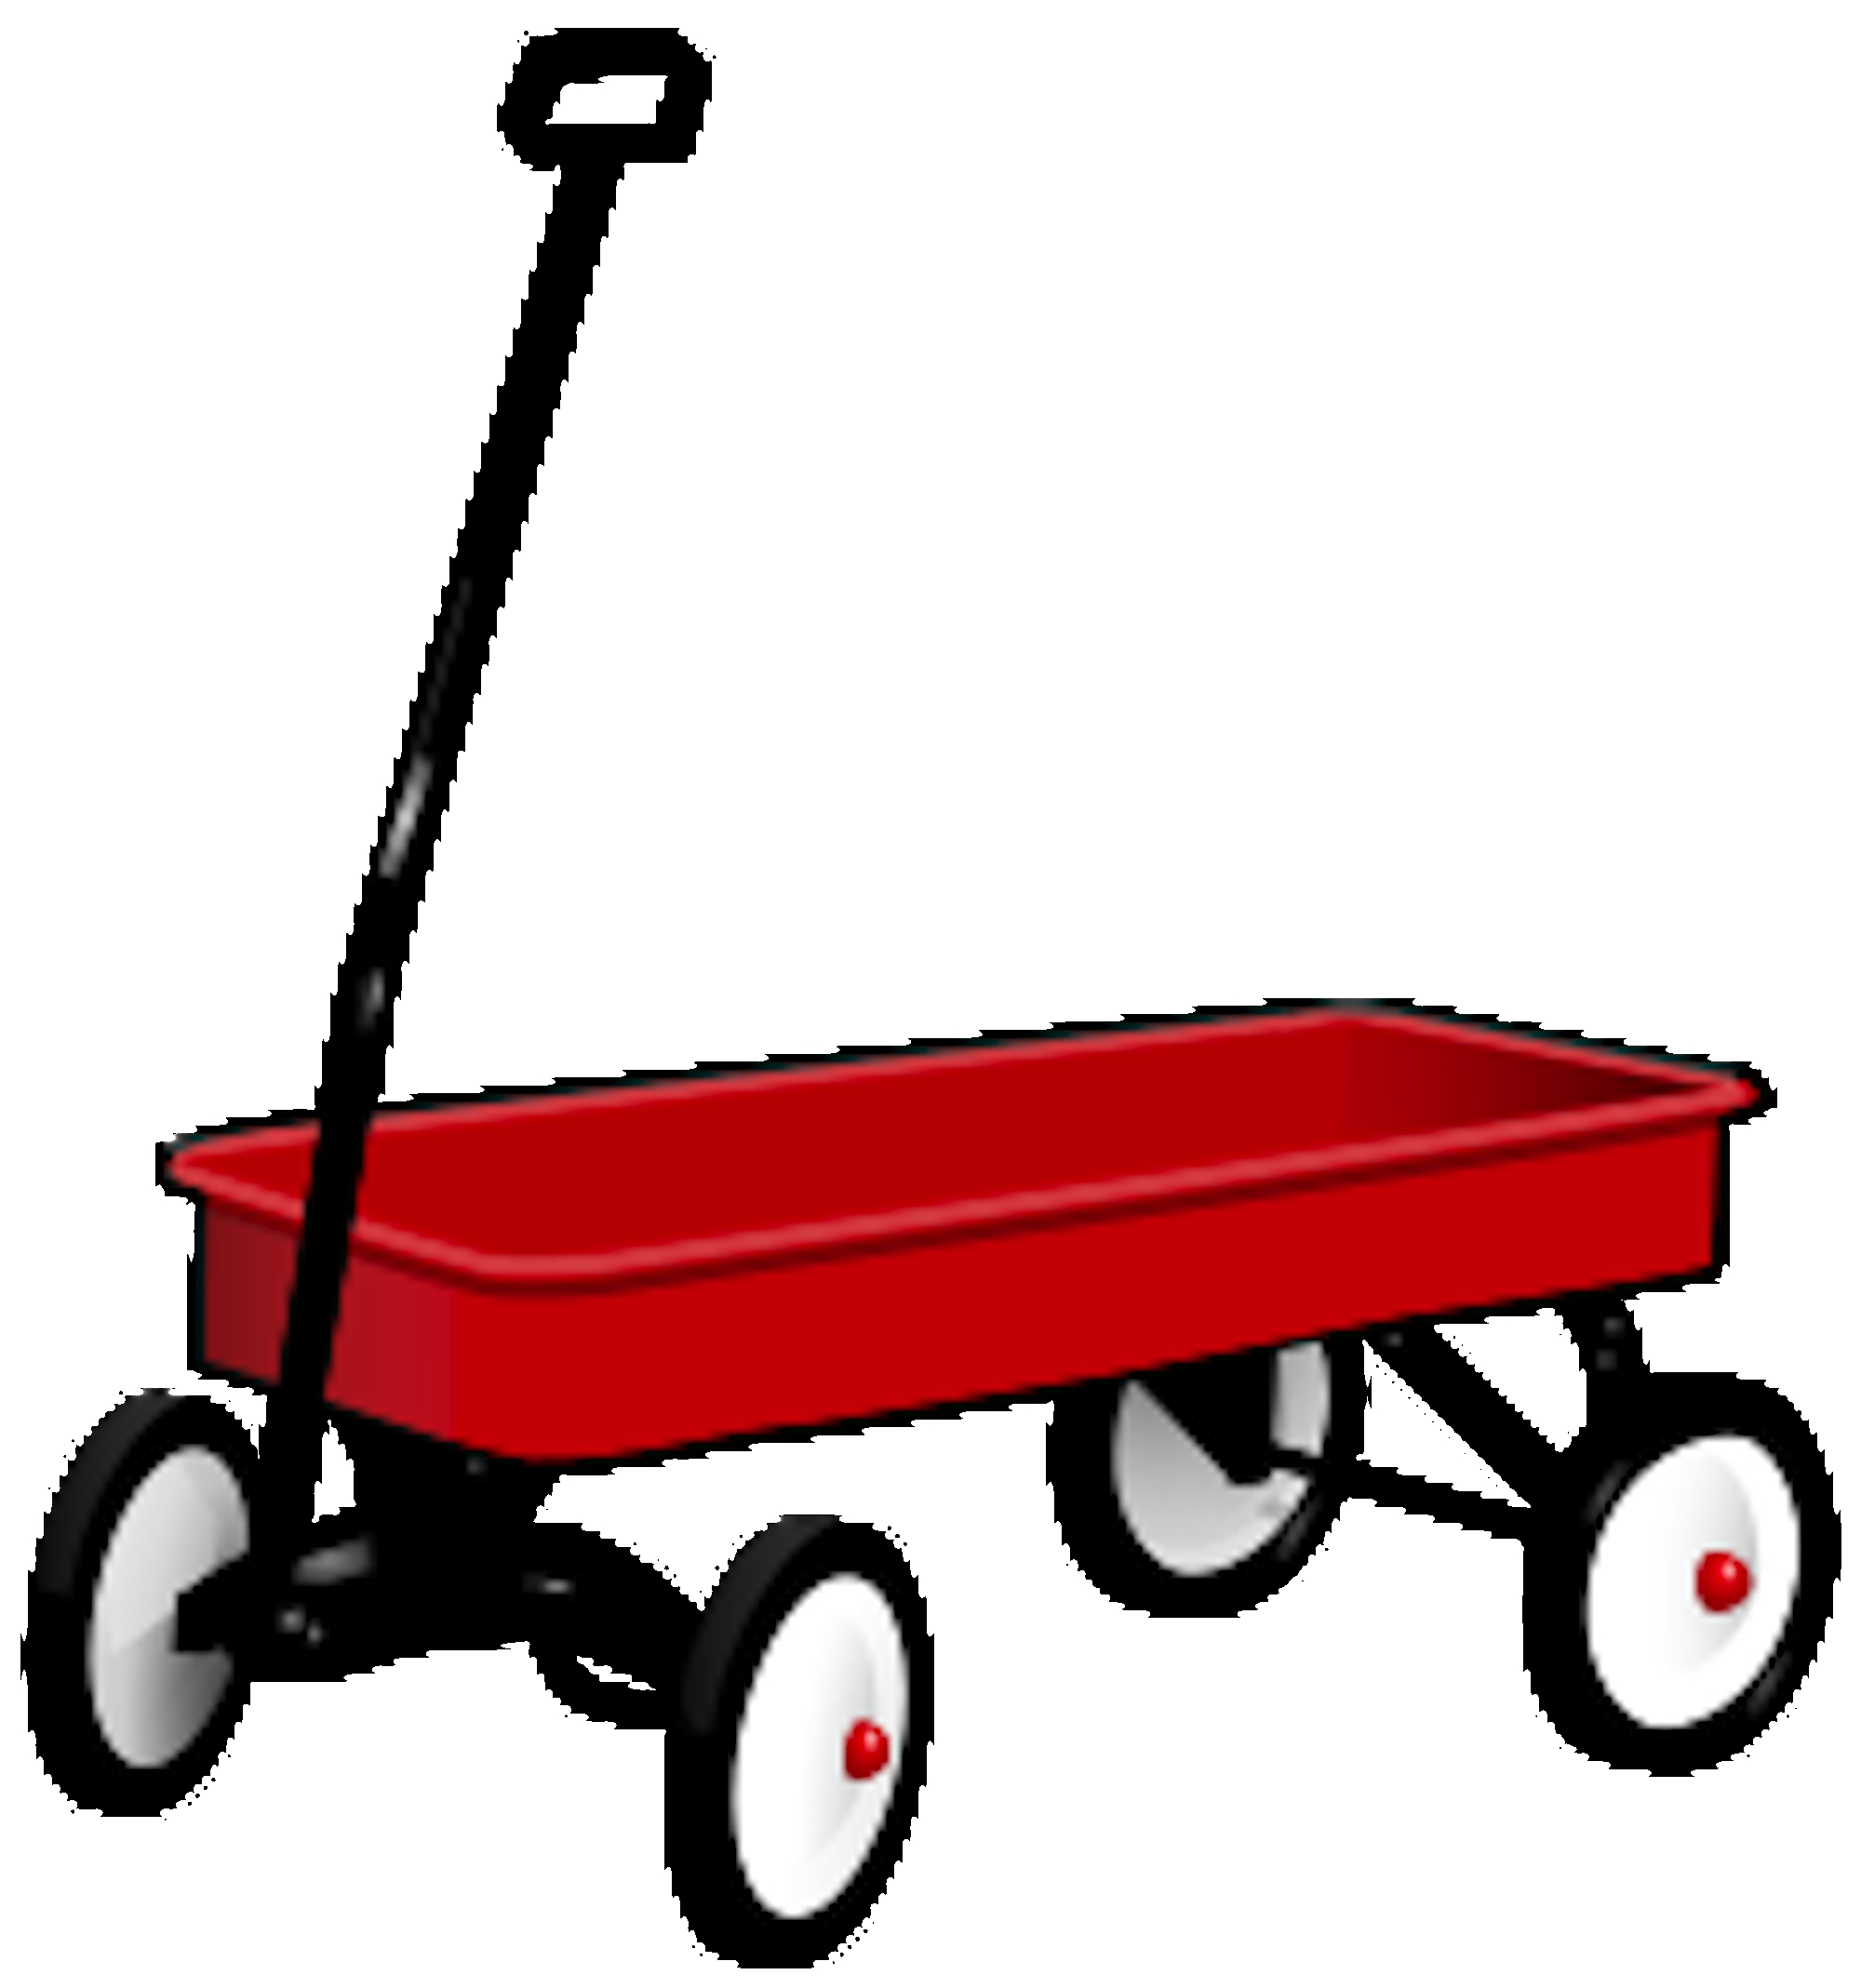 Wagon Clipart images collection for free download.